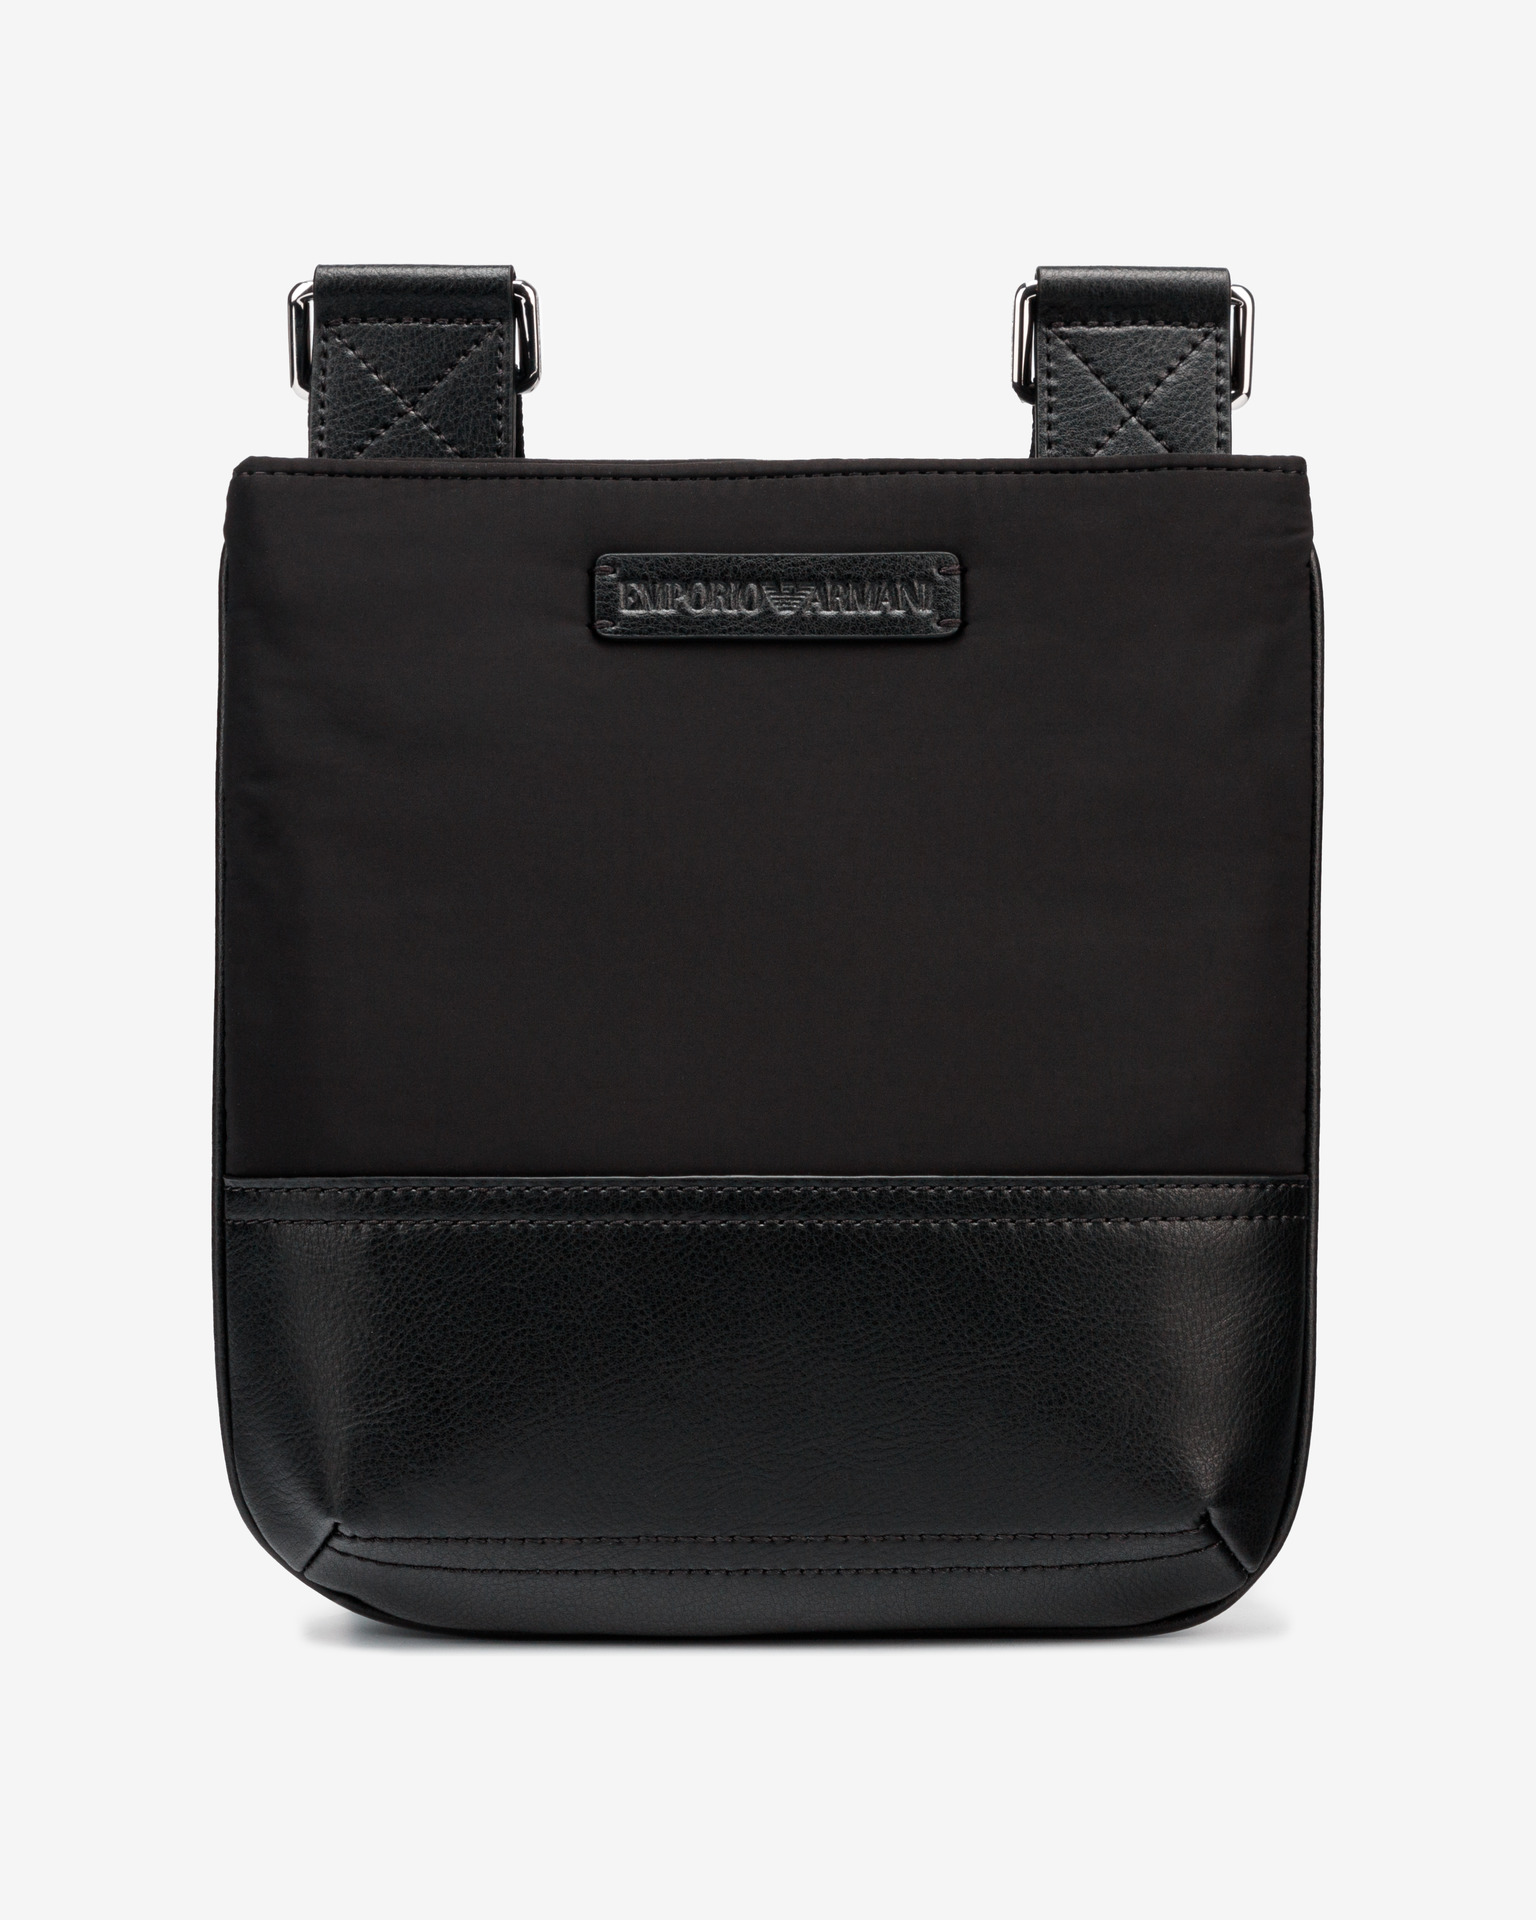 Flat Messenger Cross body bag Emporio Armani